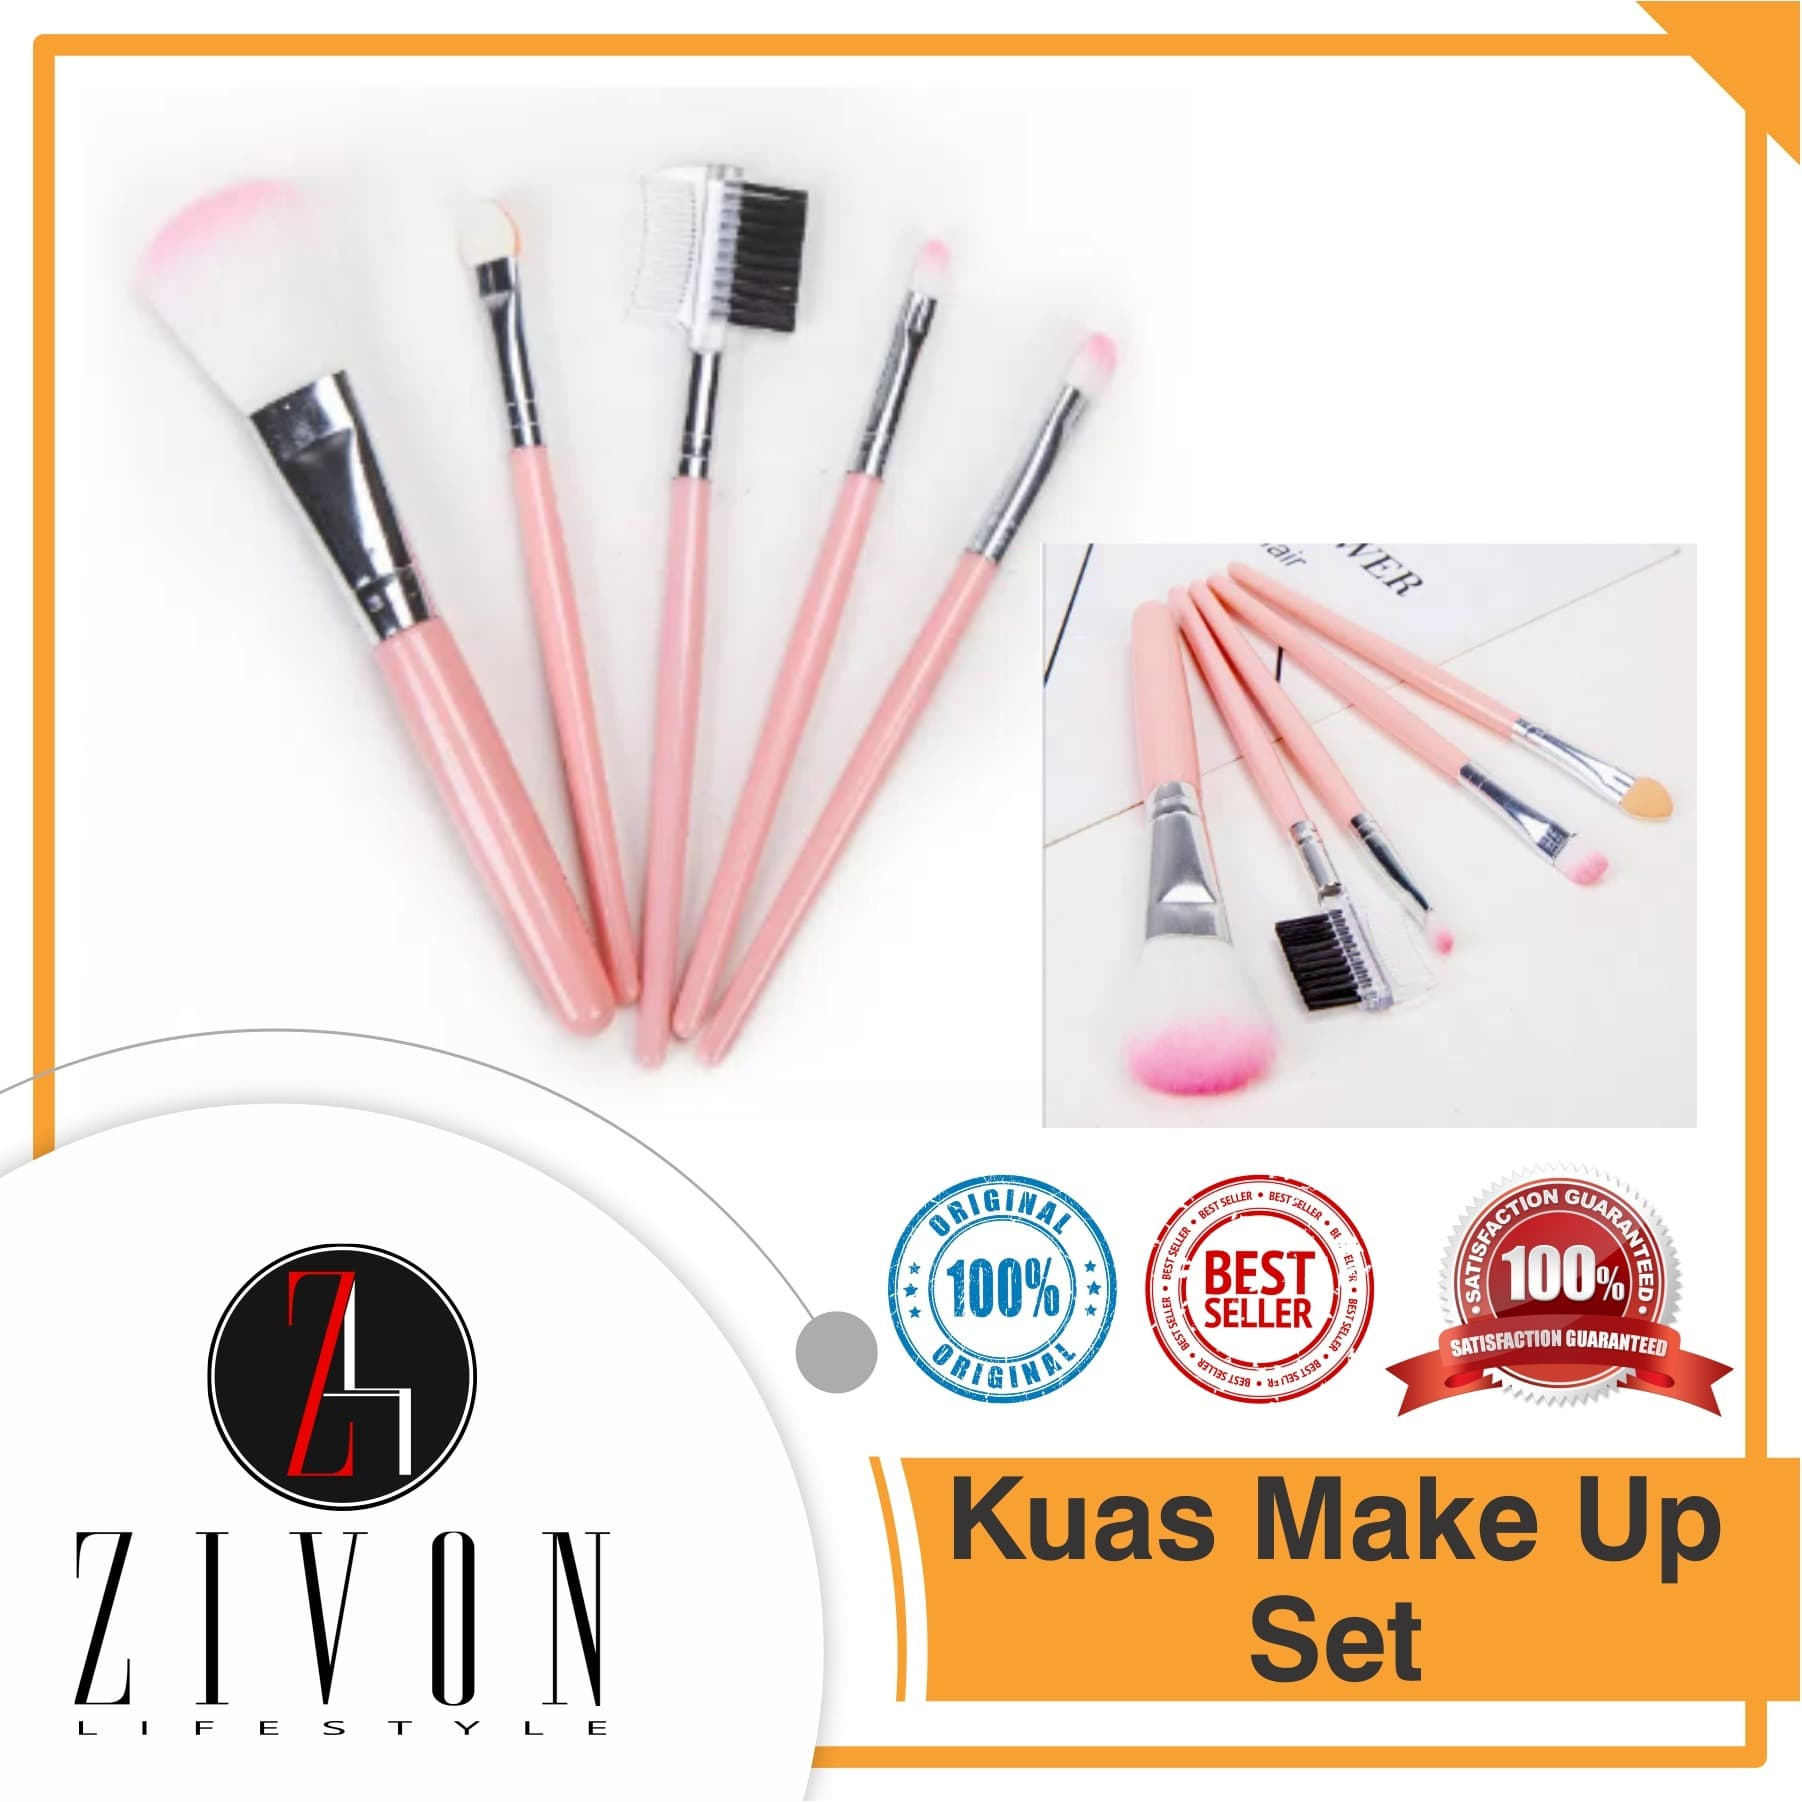 Kuas Make Up SET Isi 5 Makeup Brush PF27 thumbnail